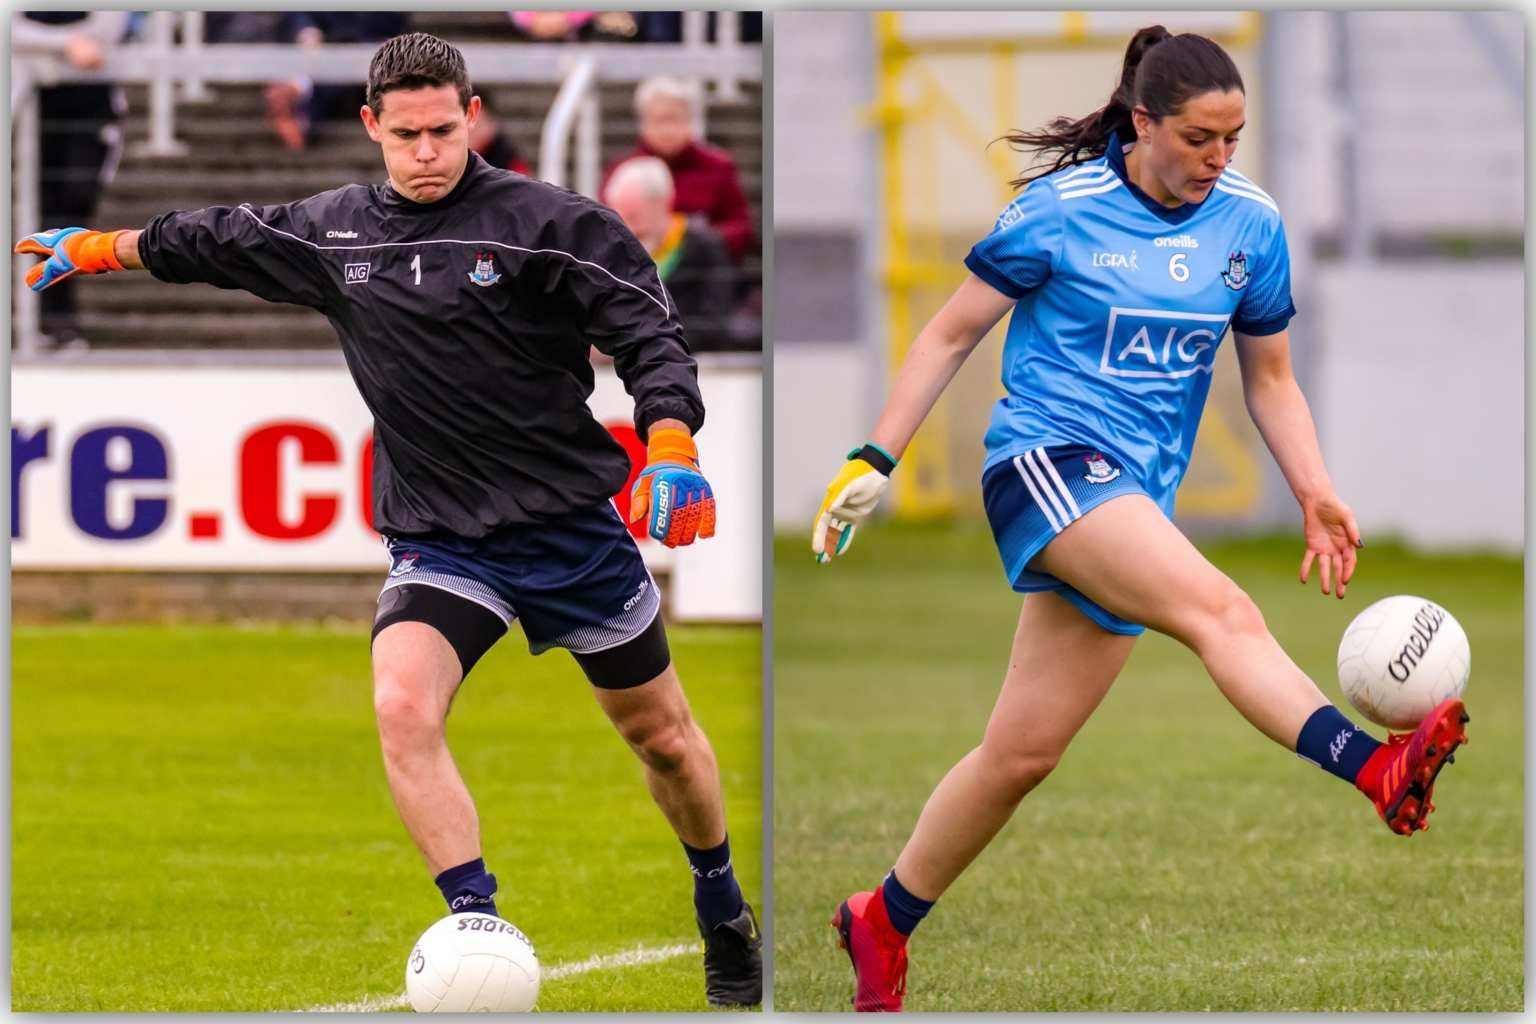 Dublin's Stephen Cluxton And Sinead Goldrick Nominated For